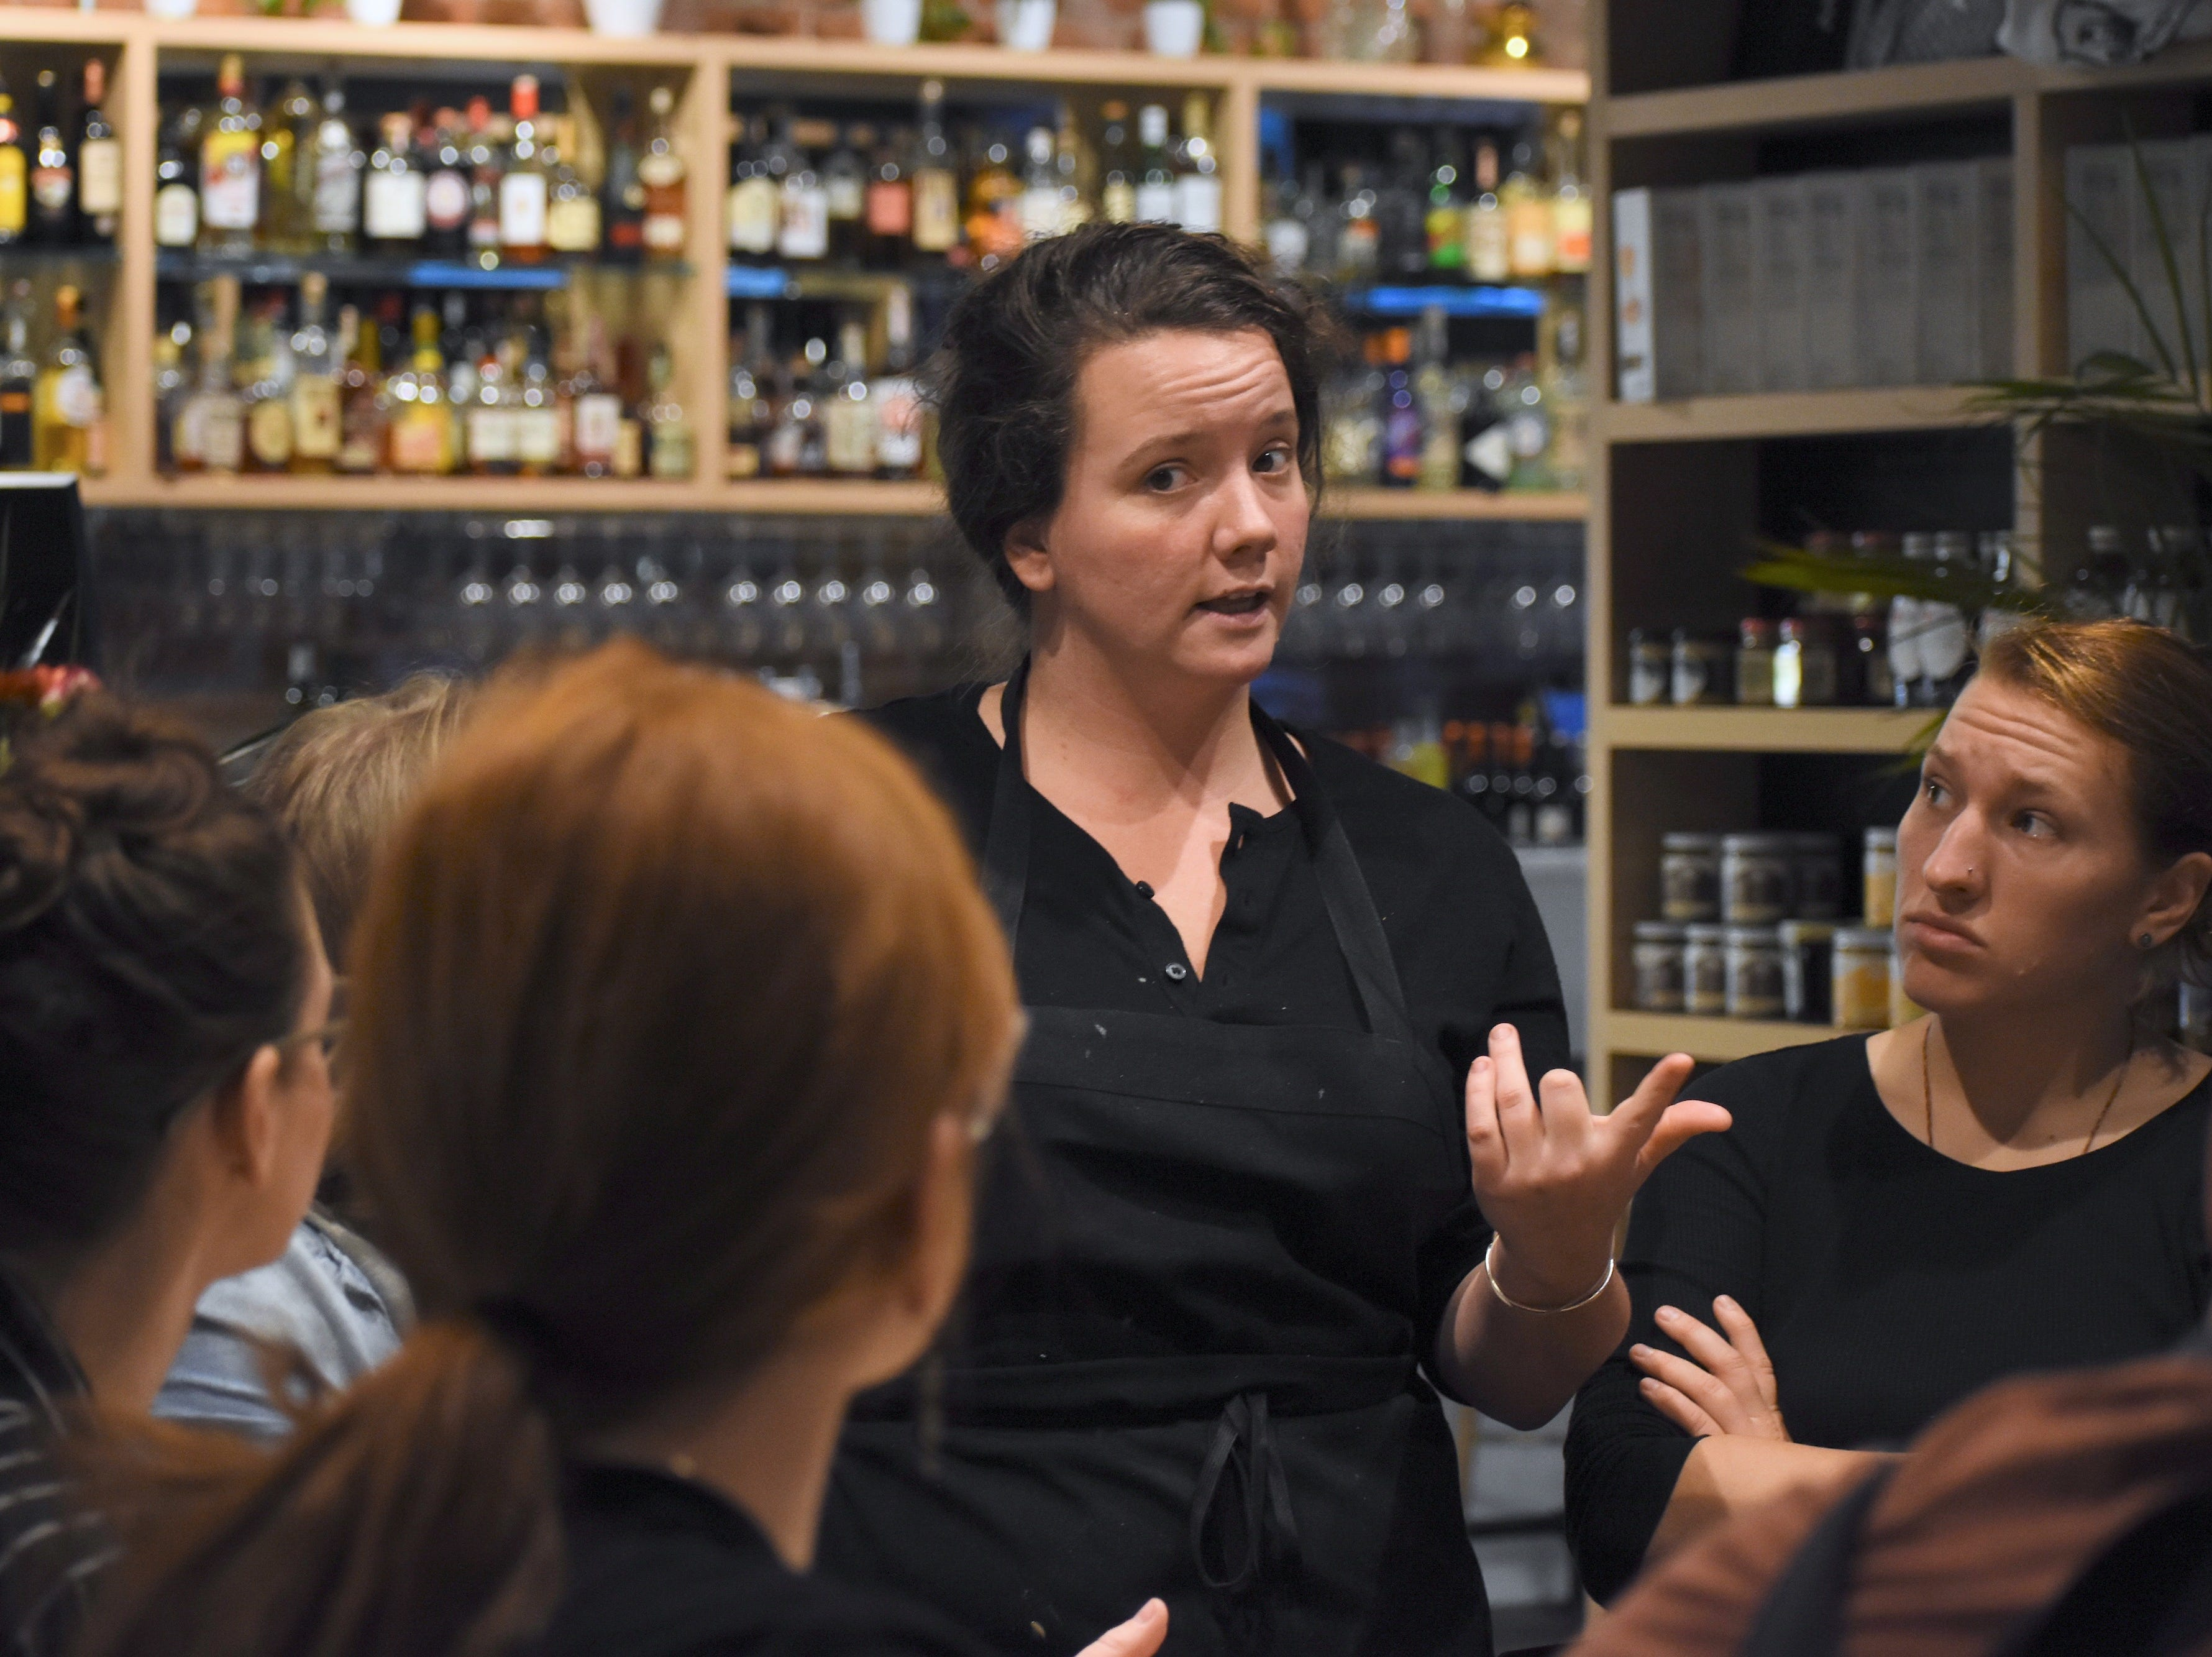 "Executive Chef / Partner Sarah Welch, center, briefs her staff on the night's adventures.   Executive Chef / Partner Sarah Welch and her all-female crew craft dishes like pork belly with apple butter, Brussel sprouts and sauerkraut  or  shrimp and pork bone broth with shrimp dumplings and a duck egg at the new hyper-seasonal meat-centric eatery called ""Marrow"" in Detroit, Michigan on November 17, 2018. The restaurant, in the city's West Village neighborhood, boasts an attached butcher shop that sells meats, house-made bone broth and other goodies. (Brandy Baker / Special to the Detroit News)"